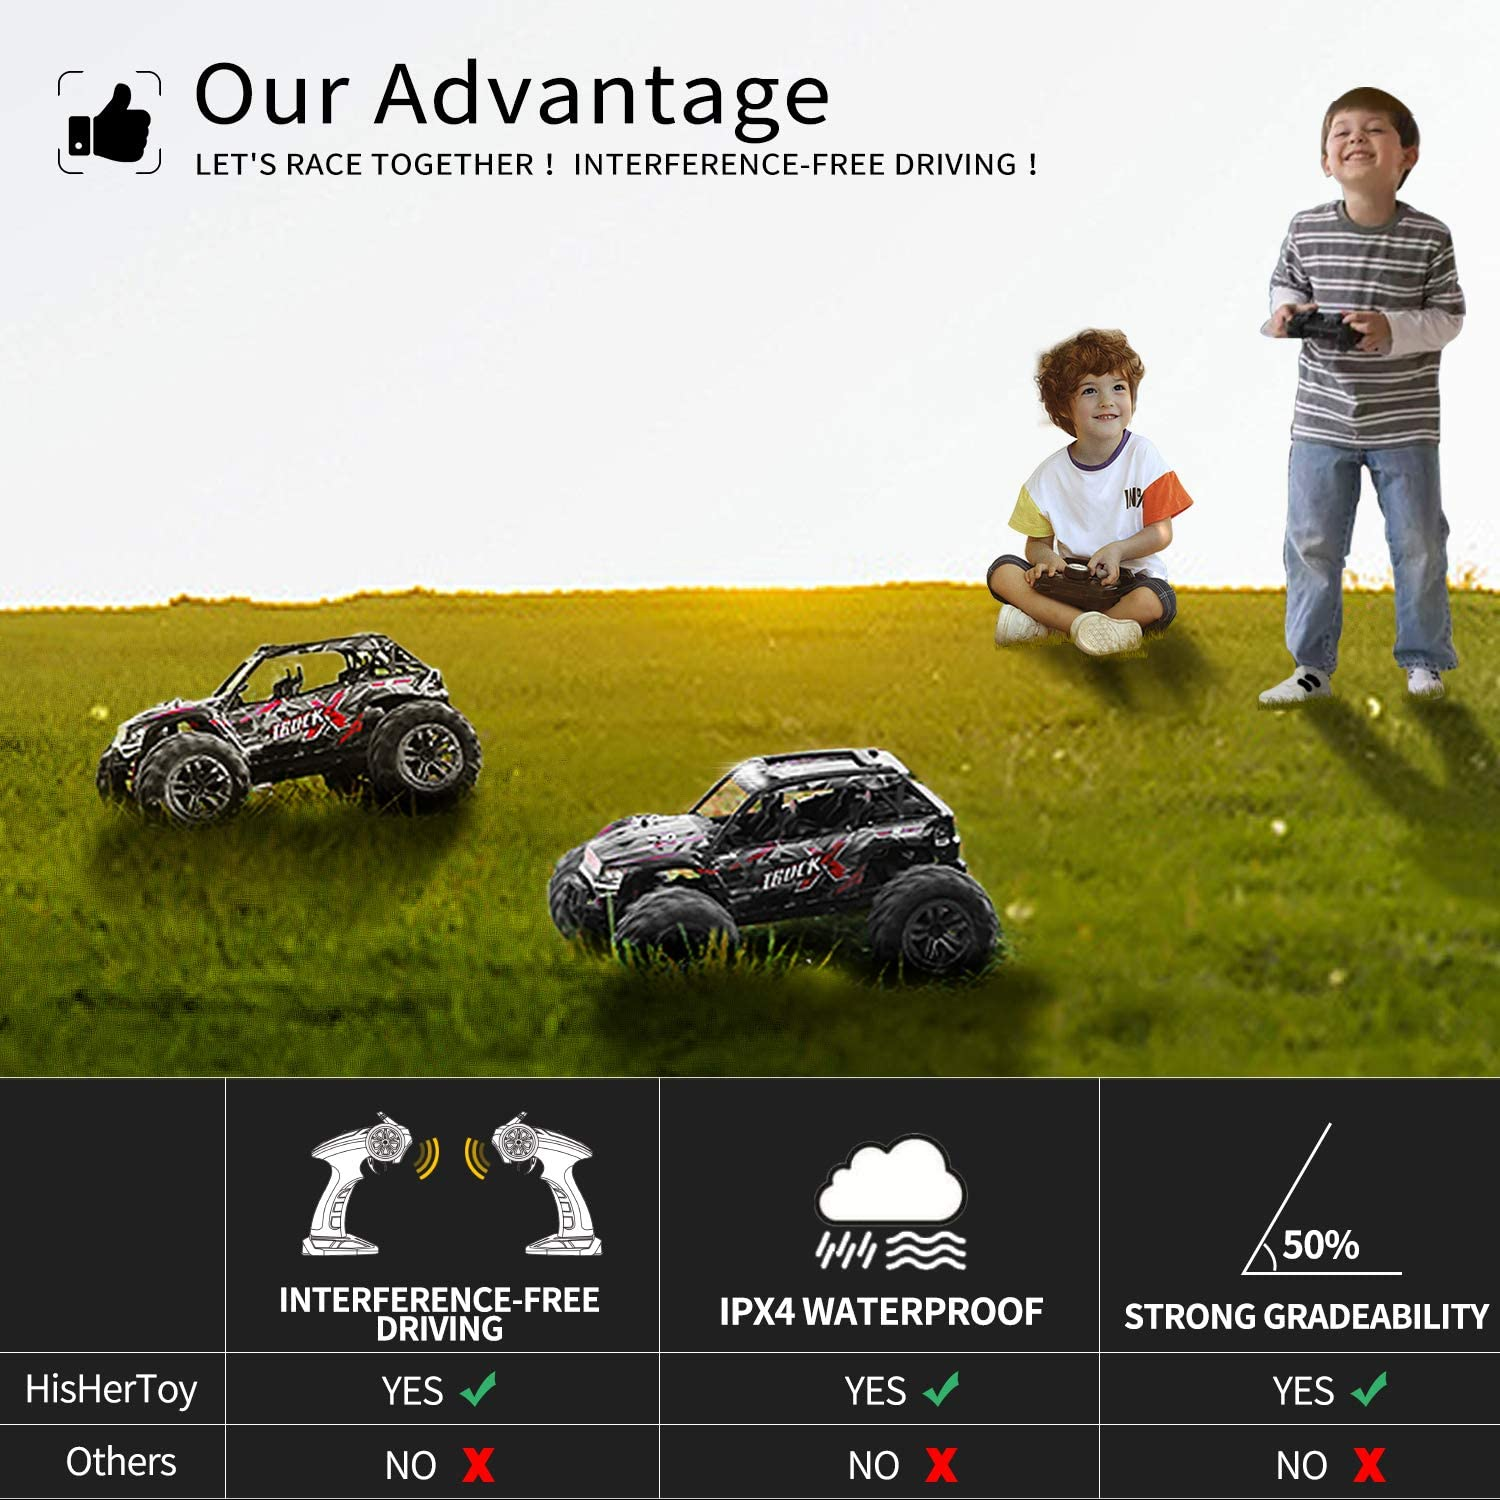 HISTOYE 4WD IPX4 Waterproof RC Cars High Speed Remote Control Cars for Kids Monster Truck Buggy Rock Crawler with Headlight enlarge